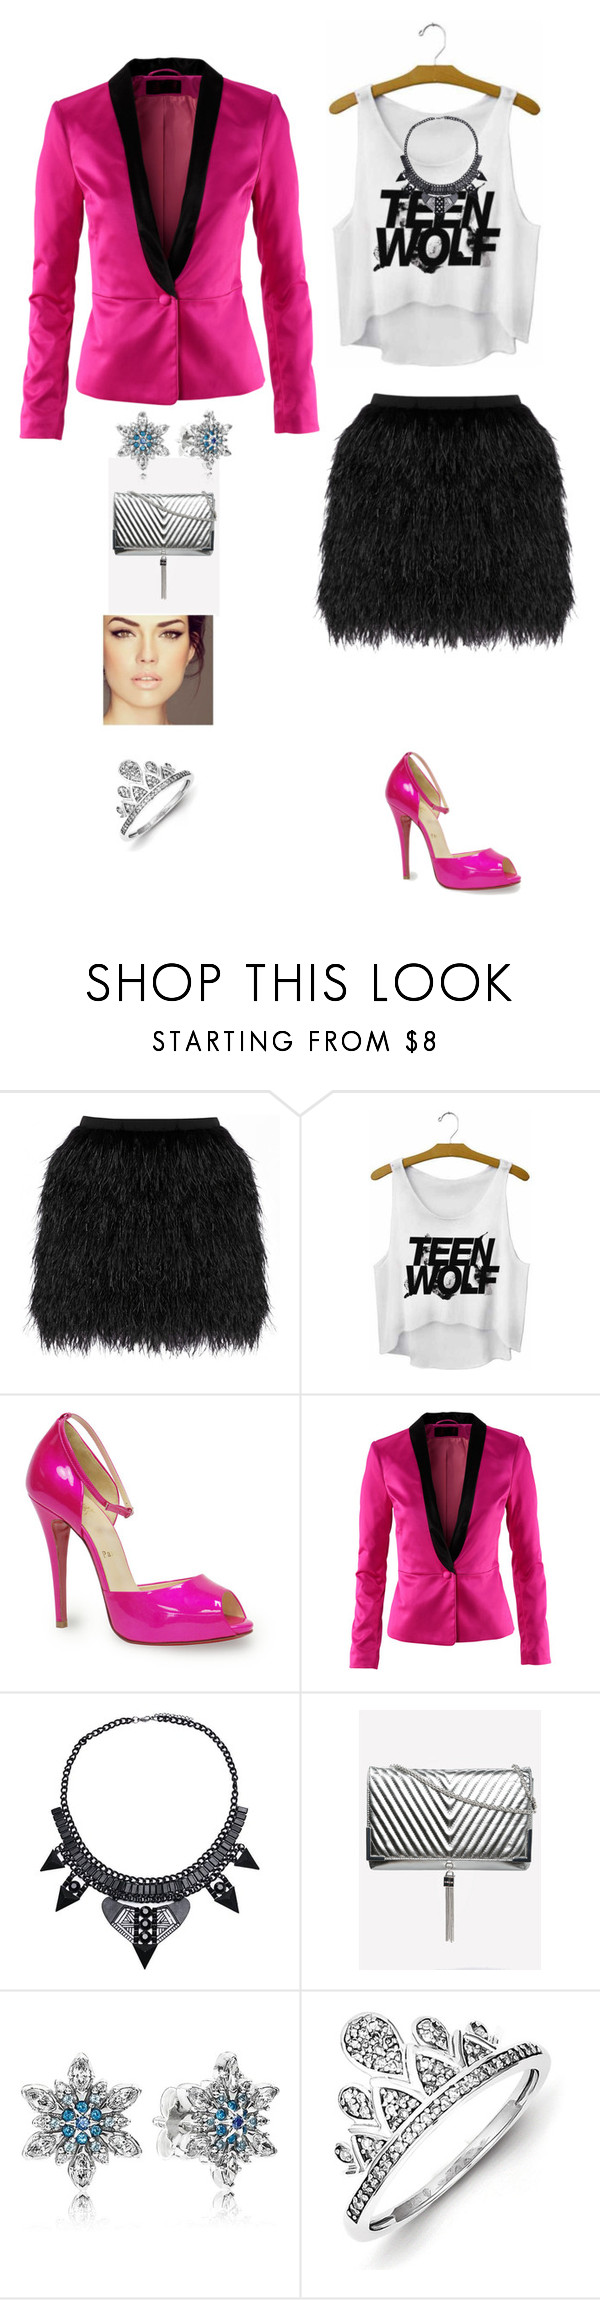 """Rock baby!"" by princesaurbana ❤ liked on Polyvore featuring Raoul, Christian Louboutin, H&M, Pandora and Kevin Jewelers"